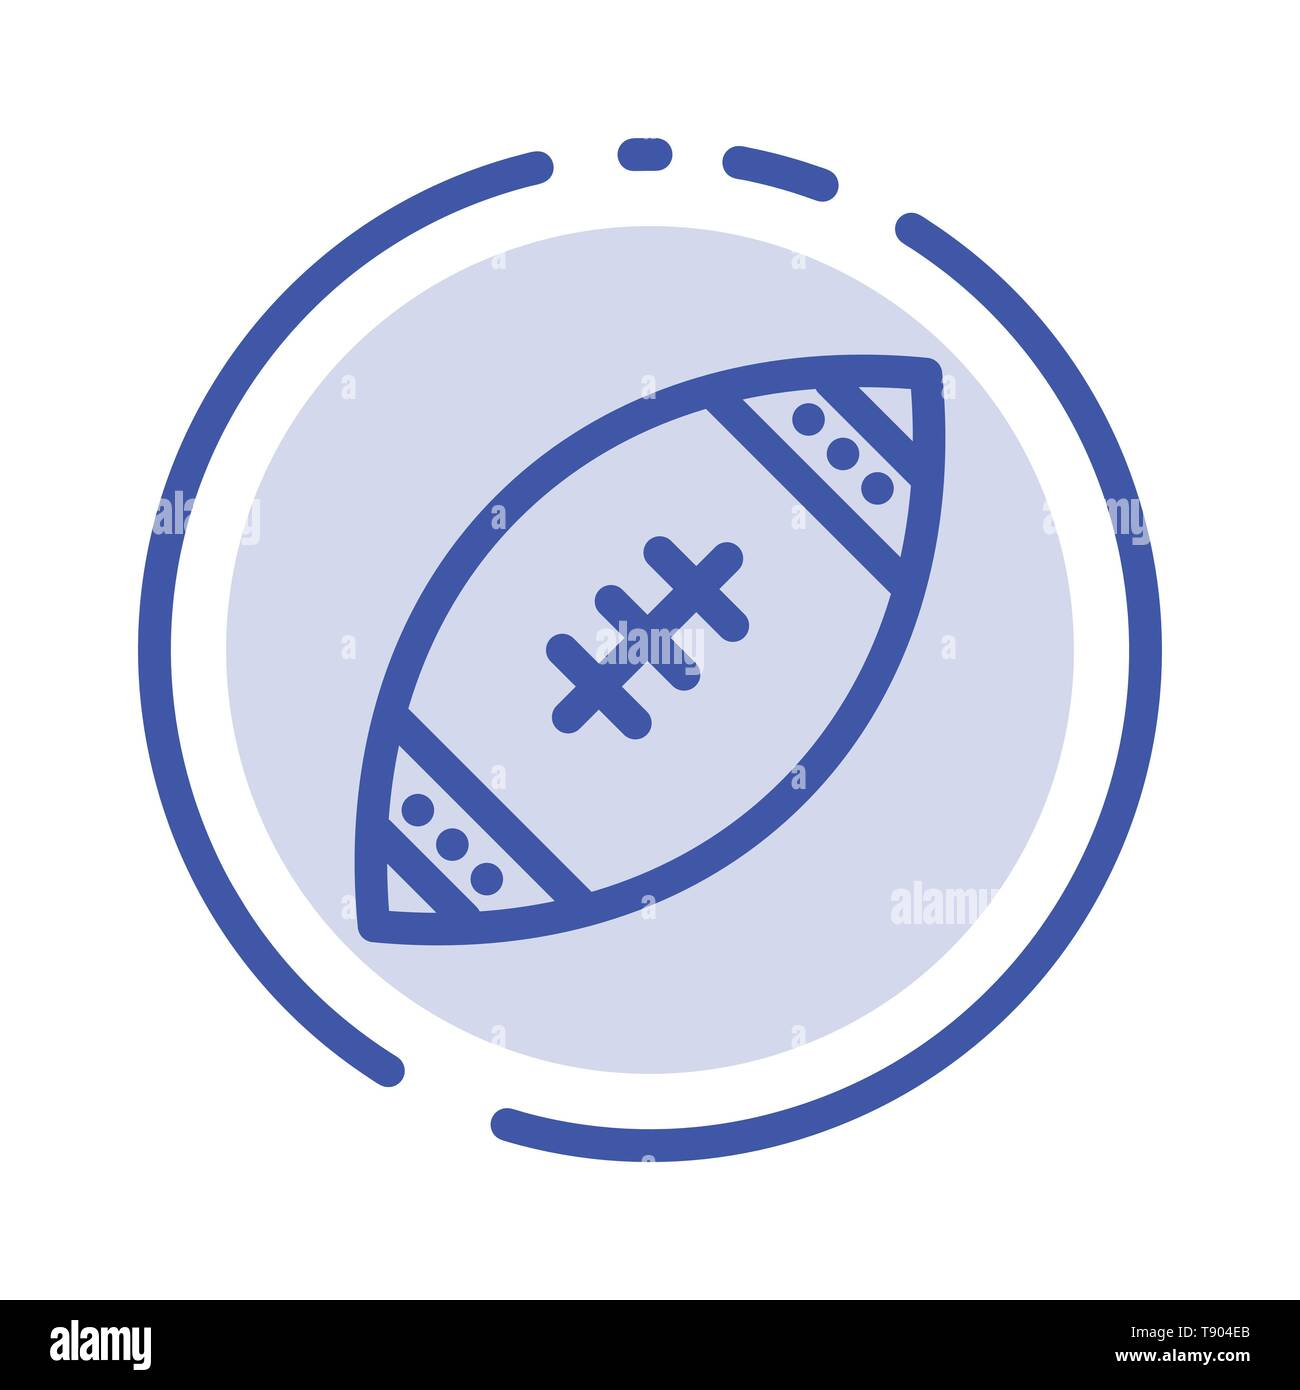 American, Ball, Football, Nfl, Rugby Blue Dotted Line Line Icon - Stock Image